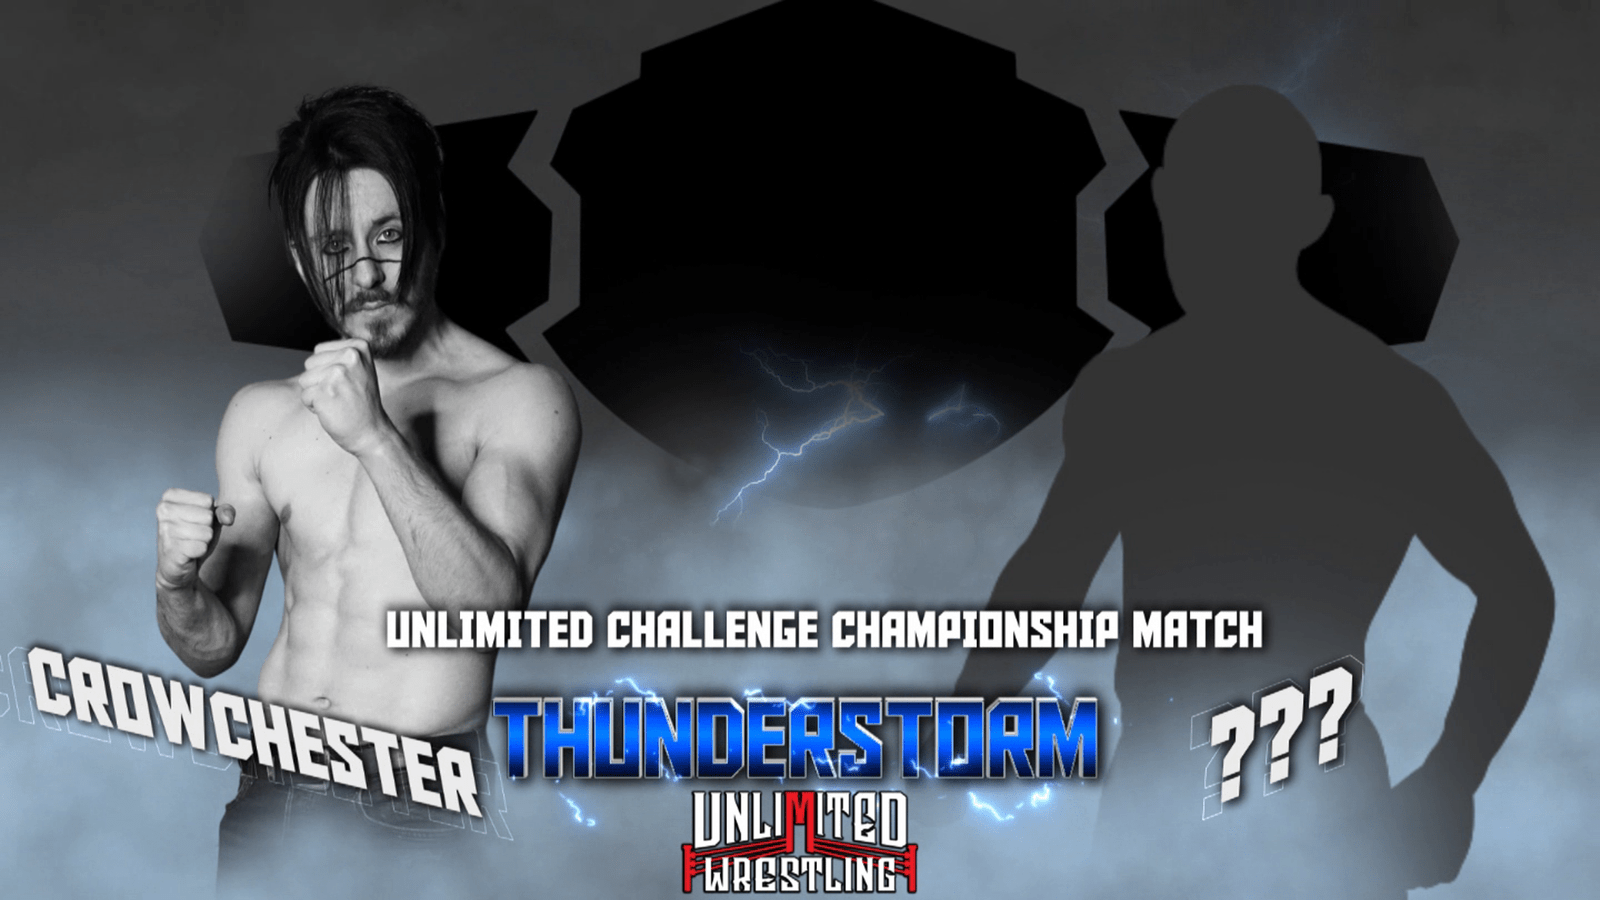 UNLIMITED CHALLENGE CHAMPIONSHIP Crowchester vs. ?